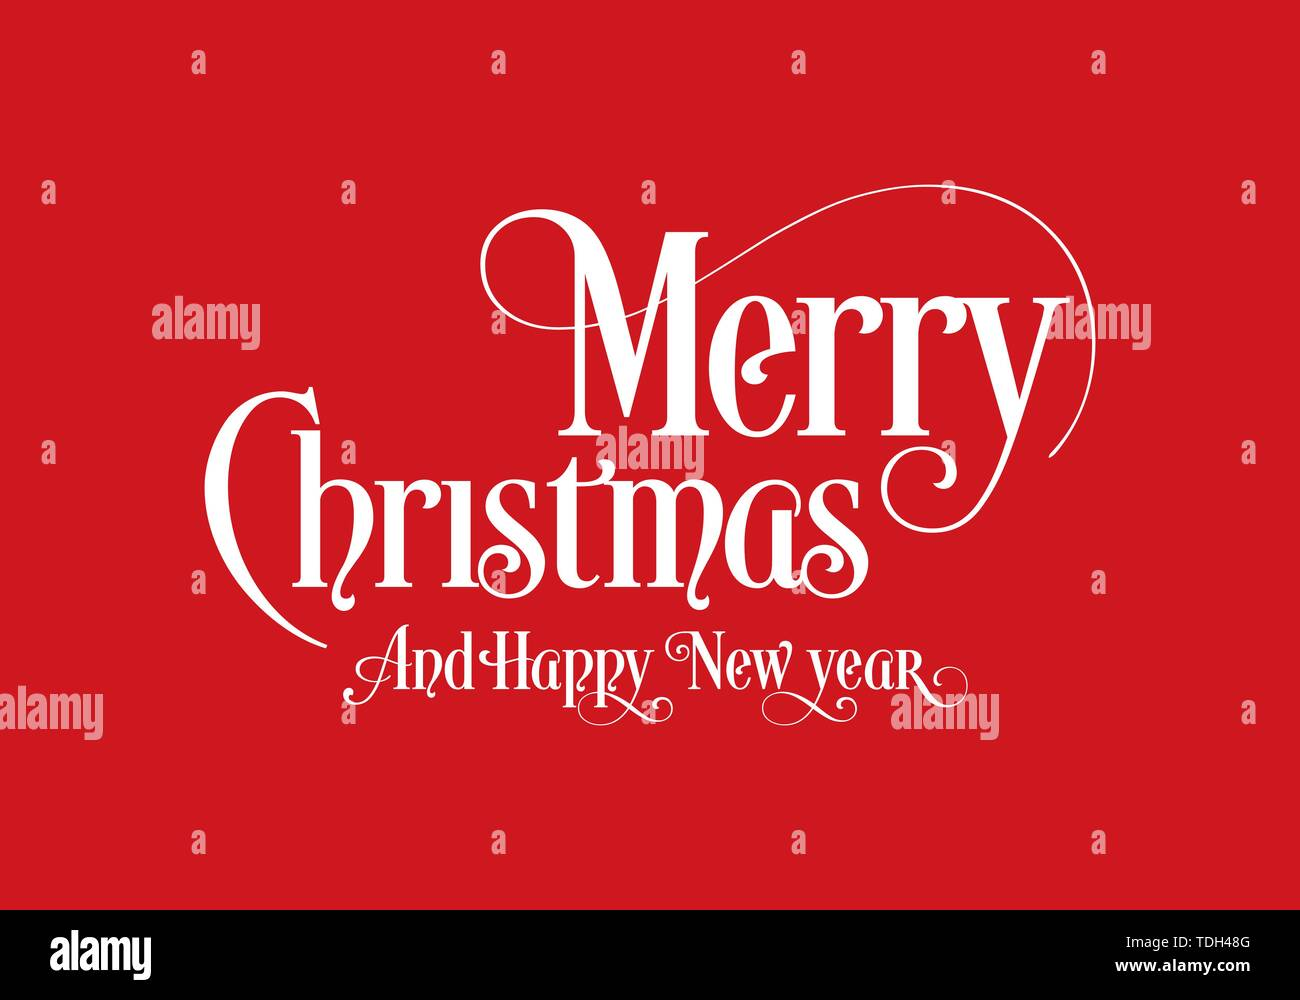 Happy Christmas Lettering Calligraphy Text Art Design With Red Background. Merry Christmas Text Design Vector Logo, Typography. - Stock Image